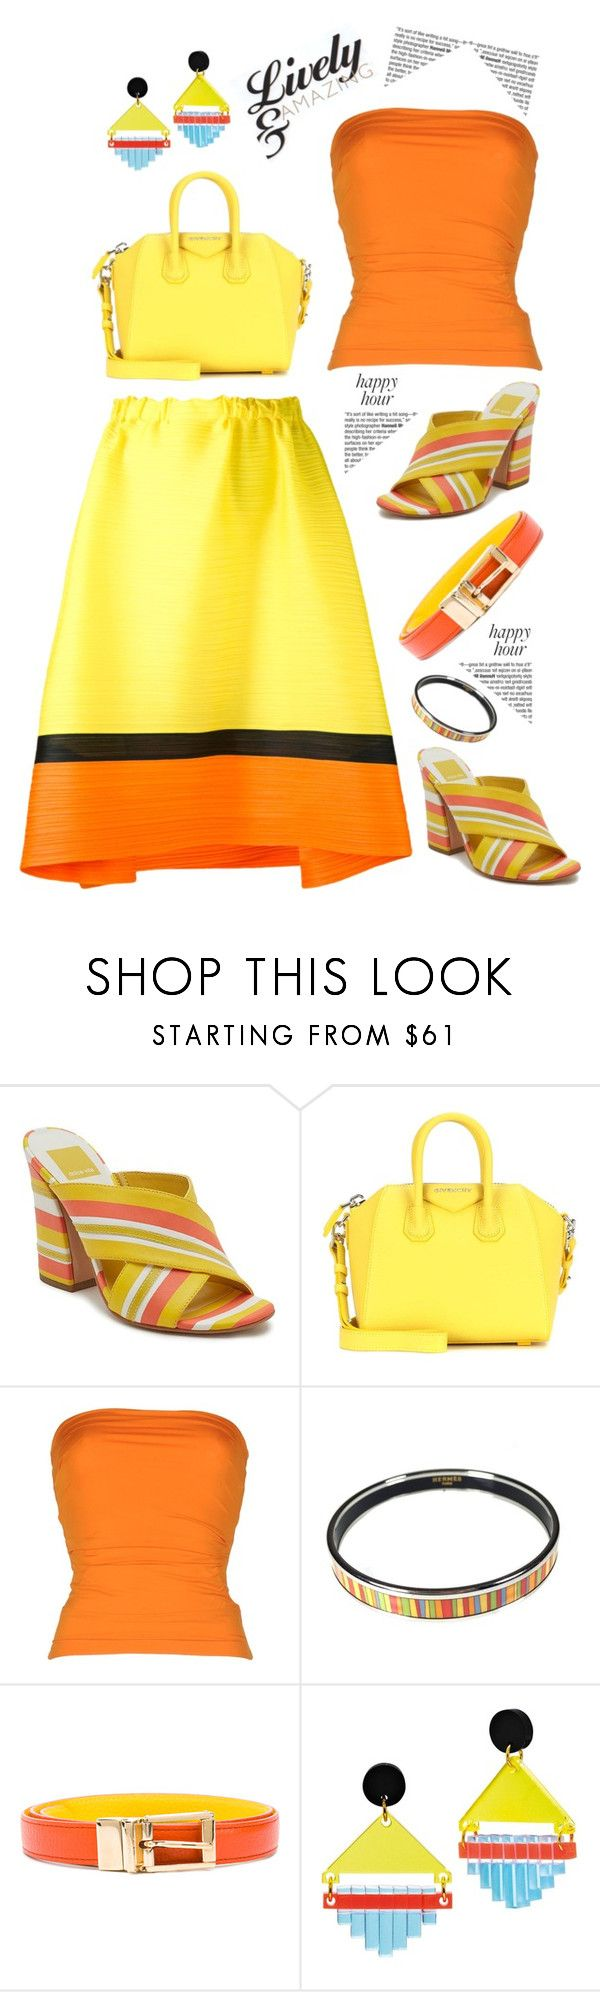 """""""Lively & Amazing'"""" by dianefantasy ❤ liked on Polyvore featuring Dolce Vita, Givenchy, Plein Sud, Hermès, Dolce&Gabbana, Toolally, Pleats Please by Issey Miyake, polyvorecommunity, happyhour and polyvoreeditorial"""